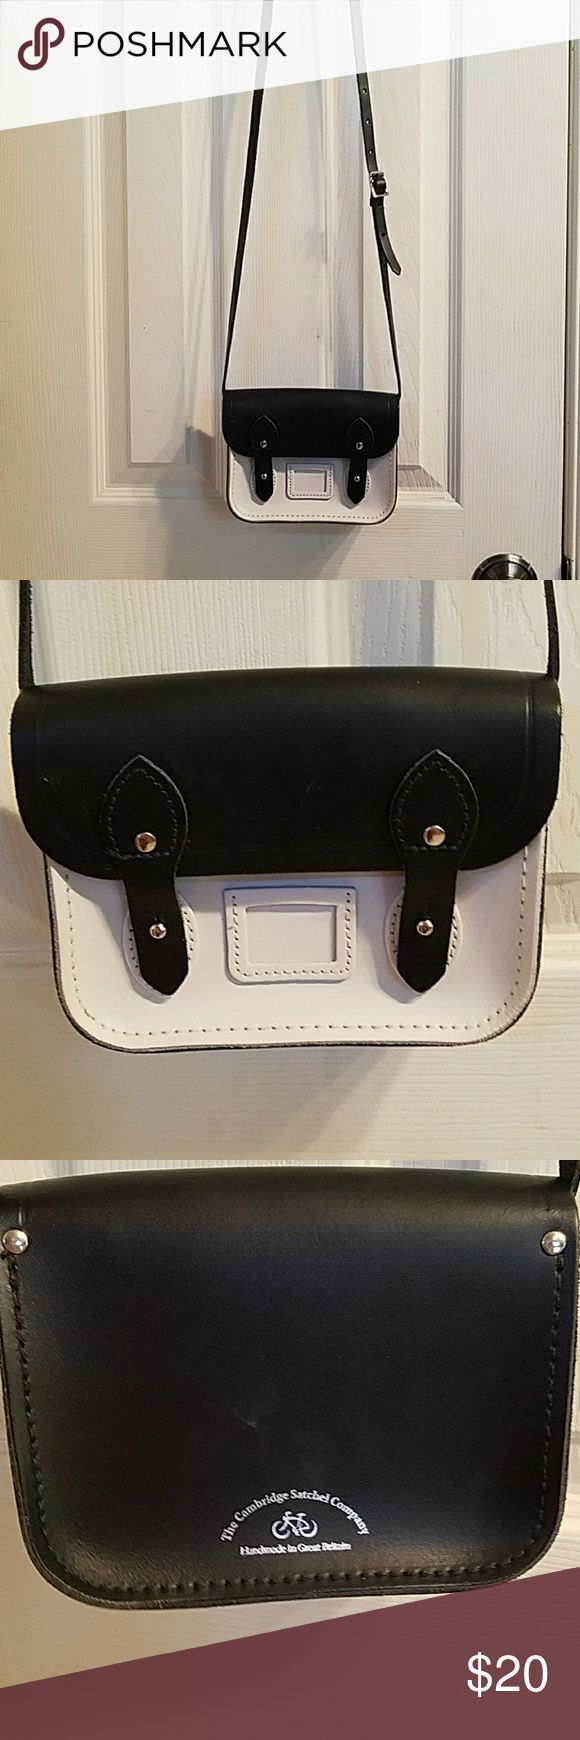 Cambridge Satchel company small crossbody bag Small crossbody bag by Cambridge Satchel company all leather excellent condition measures 5 by 7 inches Cambridge Satchel Bags